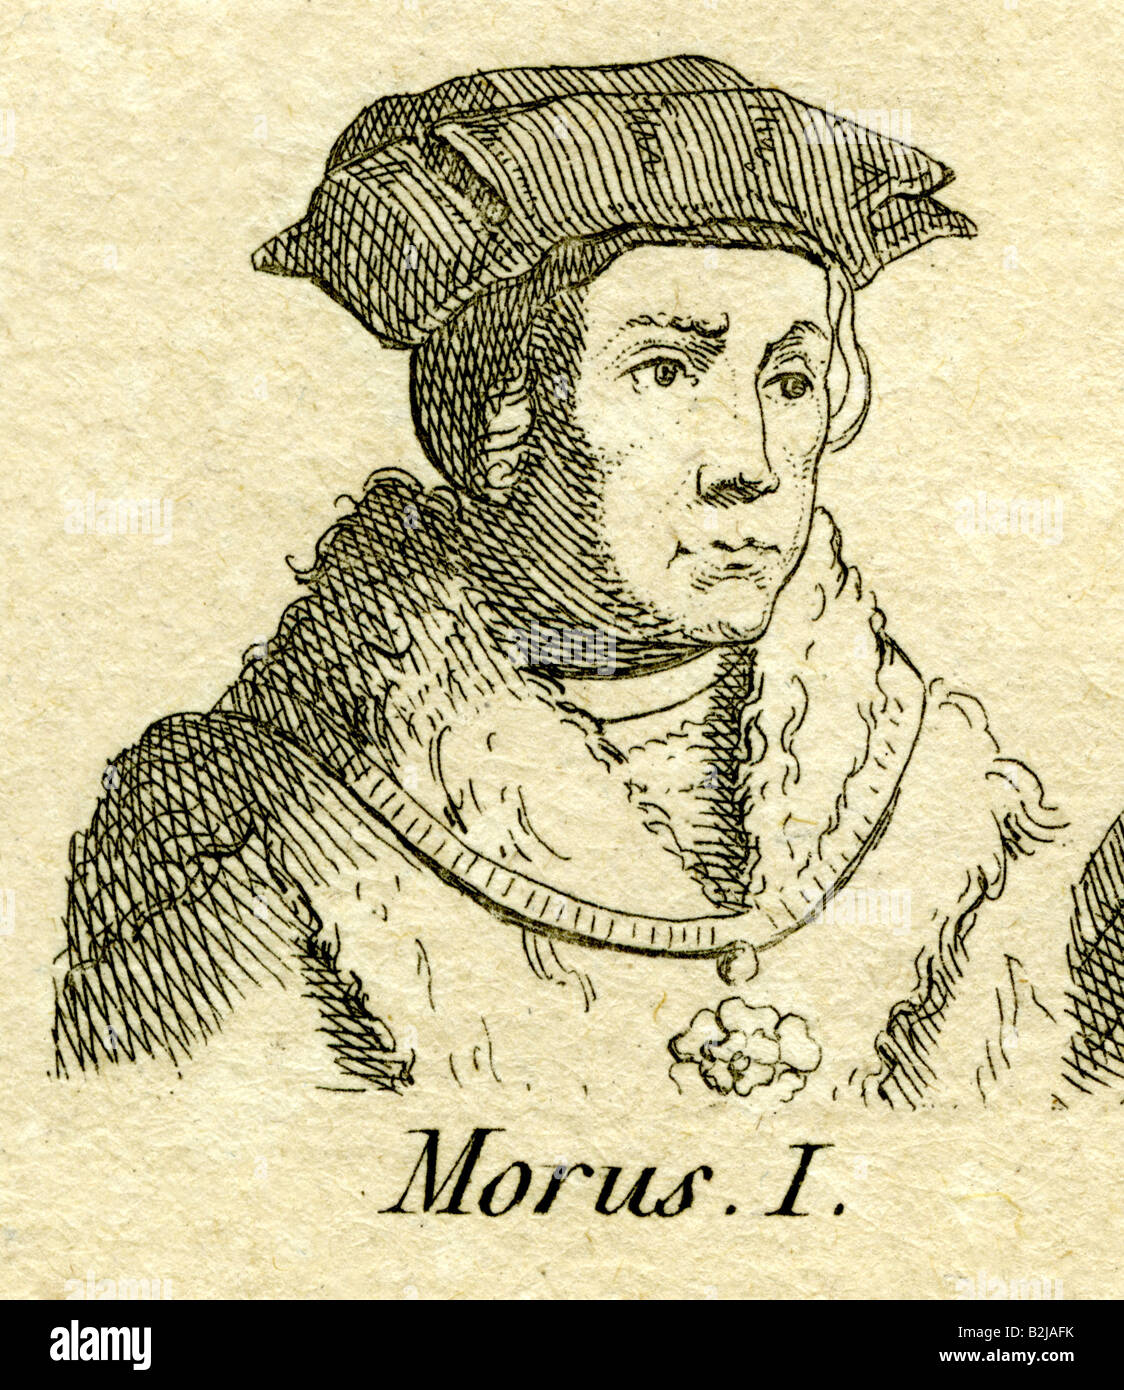 More, Thomas, 7.2.1478 - 6.7.1535, English philosopher and politician, portrait, engraving, 18th century, , Artist's - Stock Image